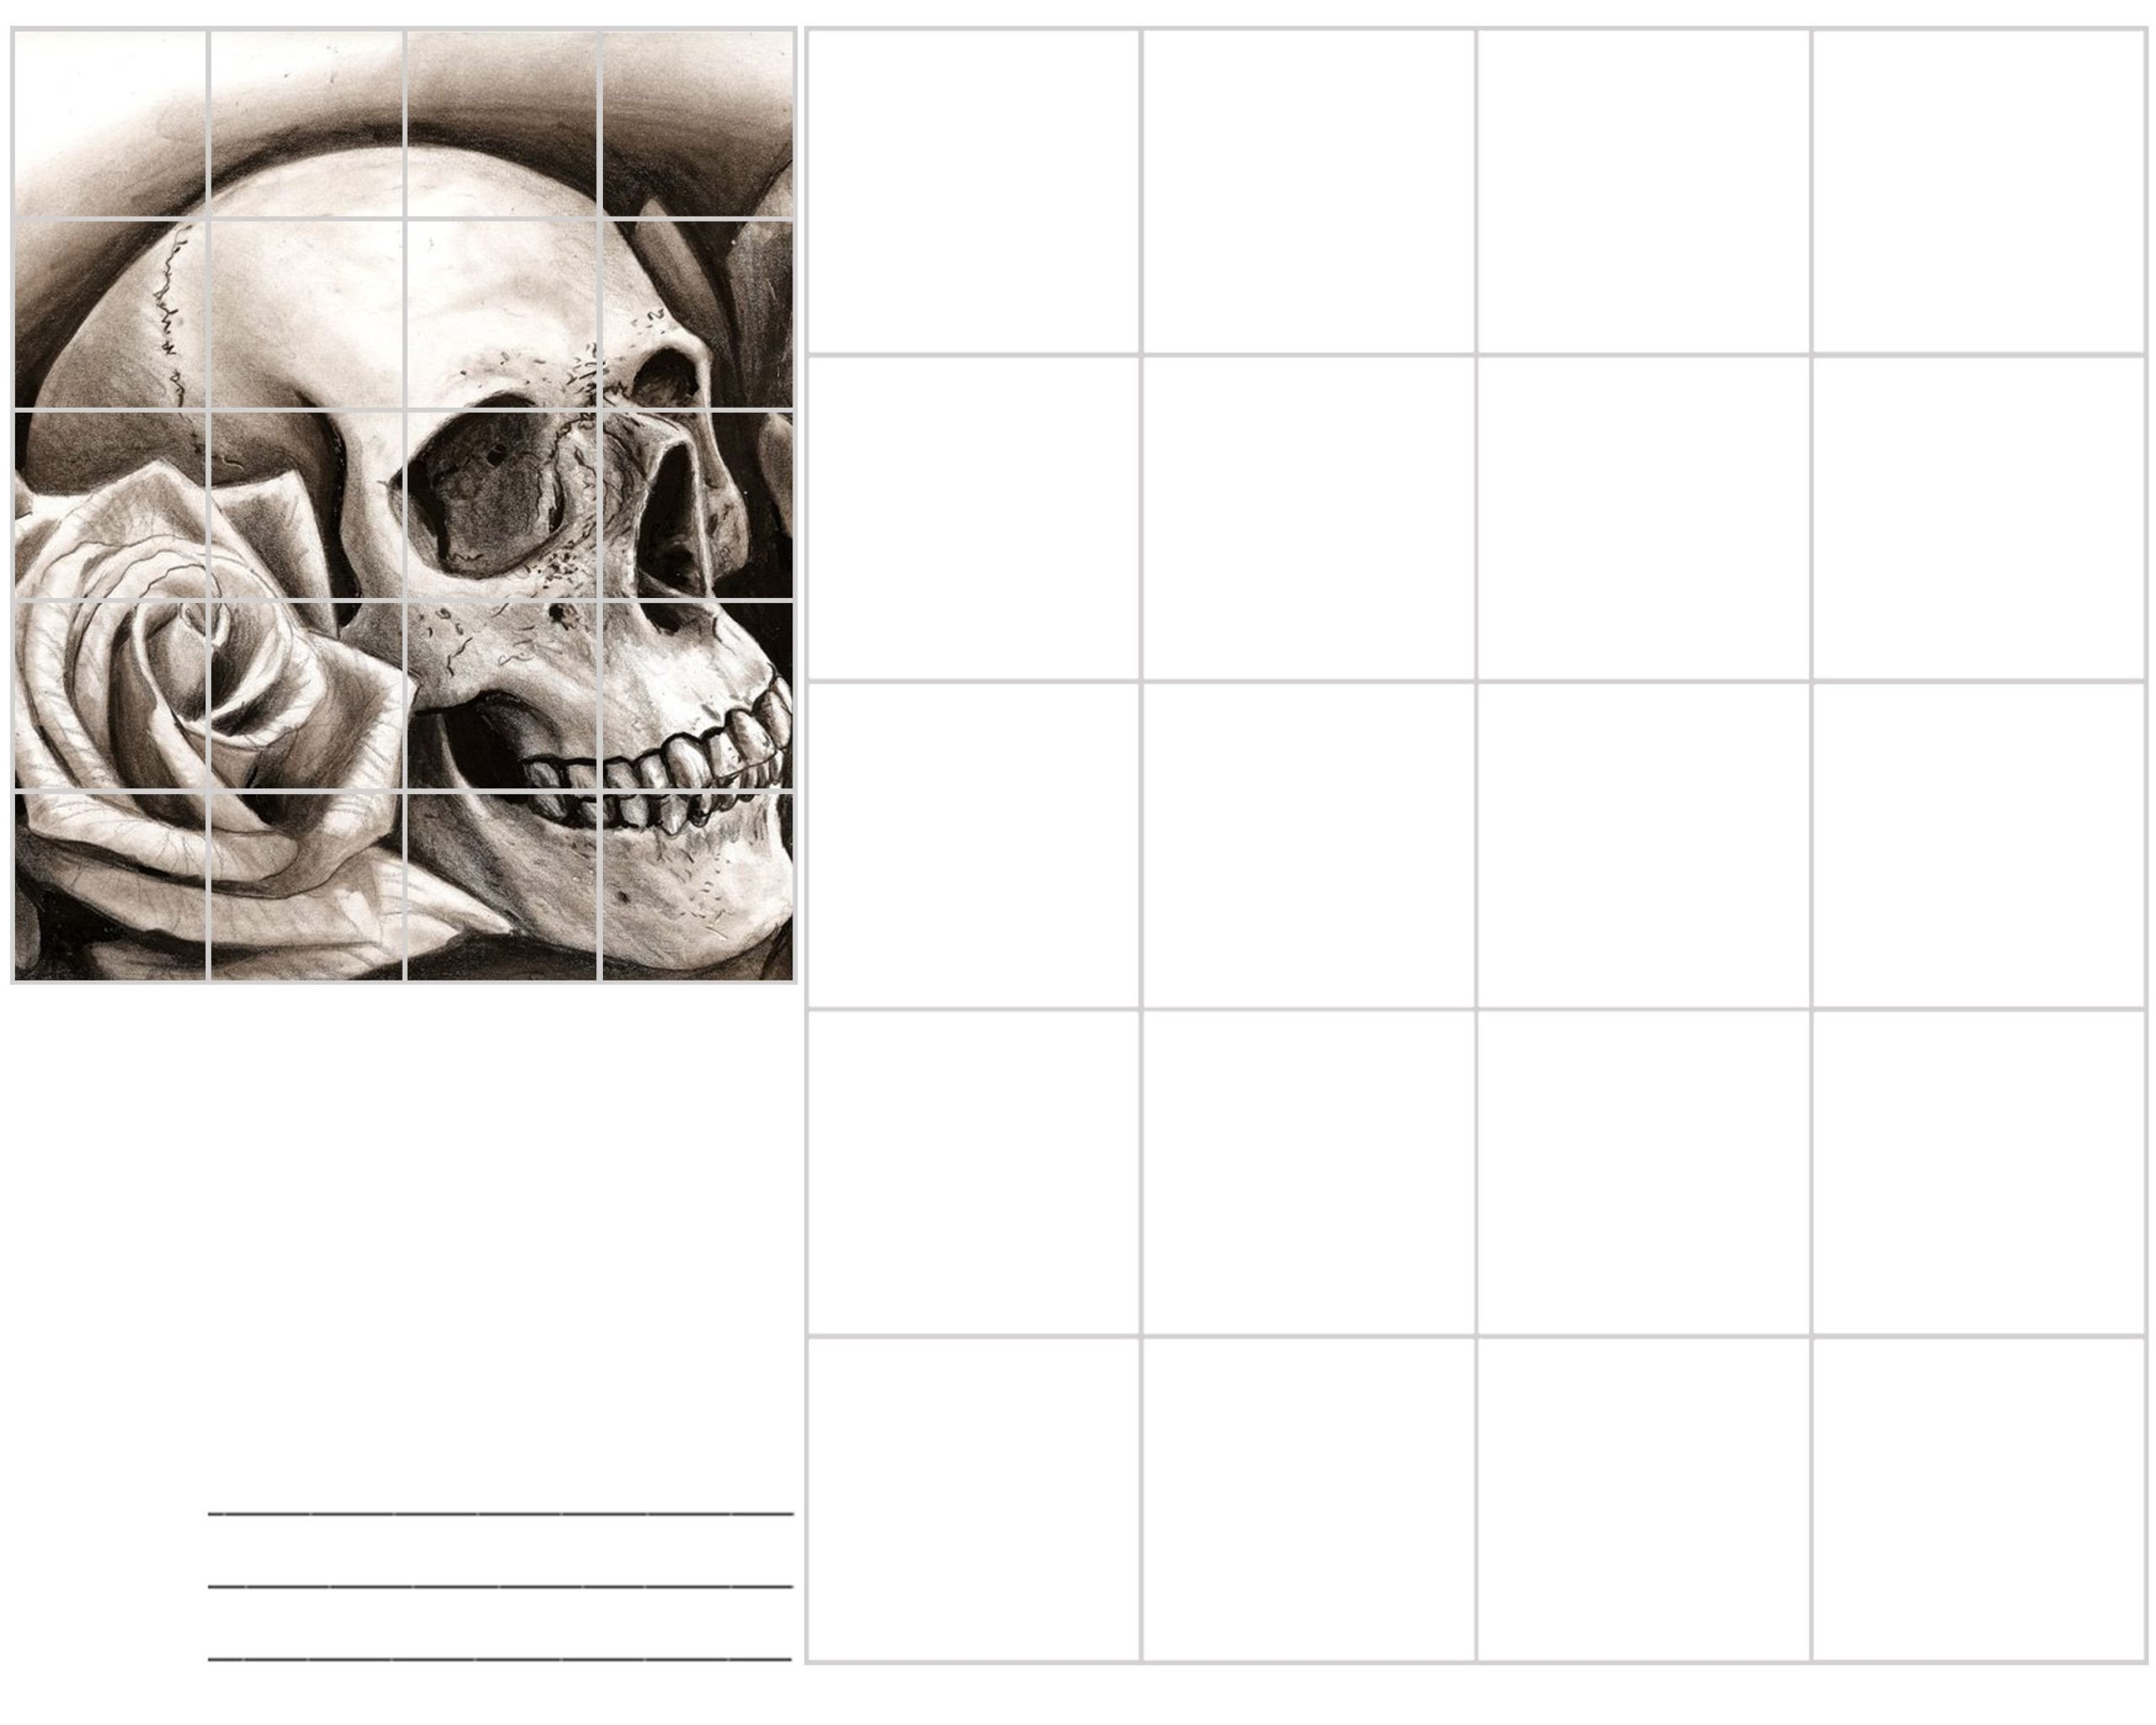 Art Worksheets Middle School Image Result for Skull Grid Drawing Art Lessons Middle